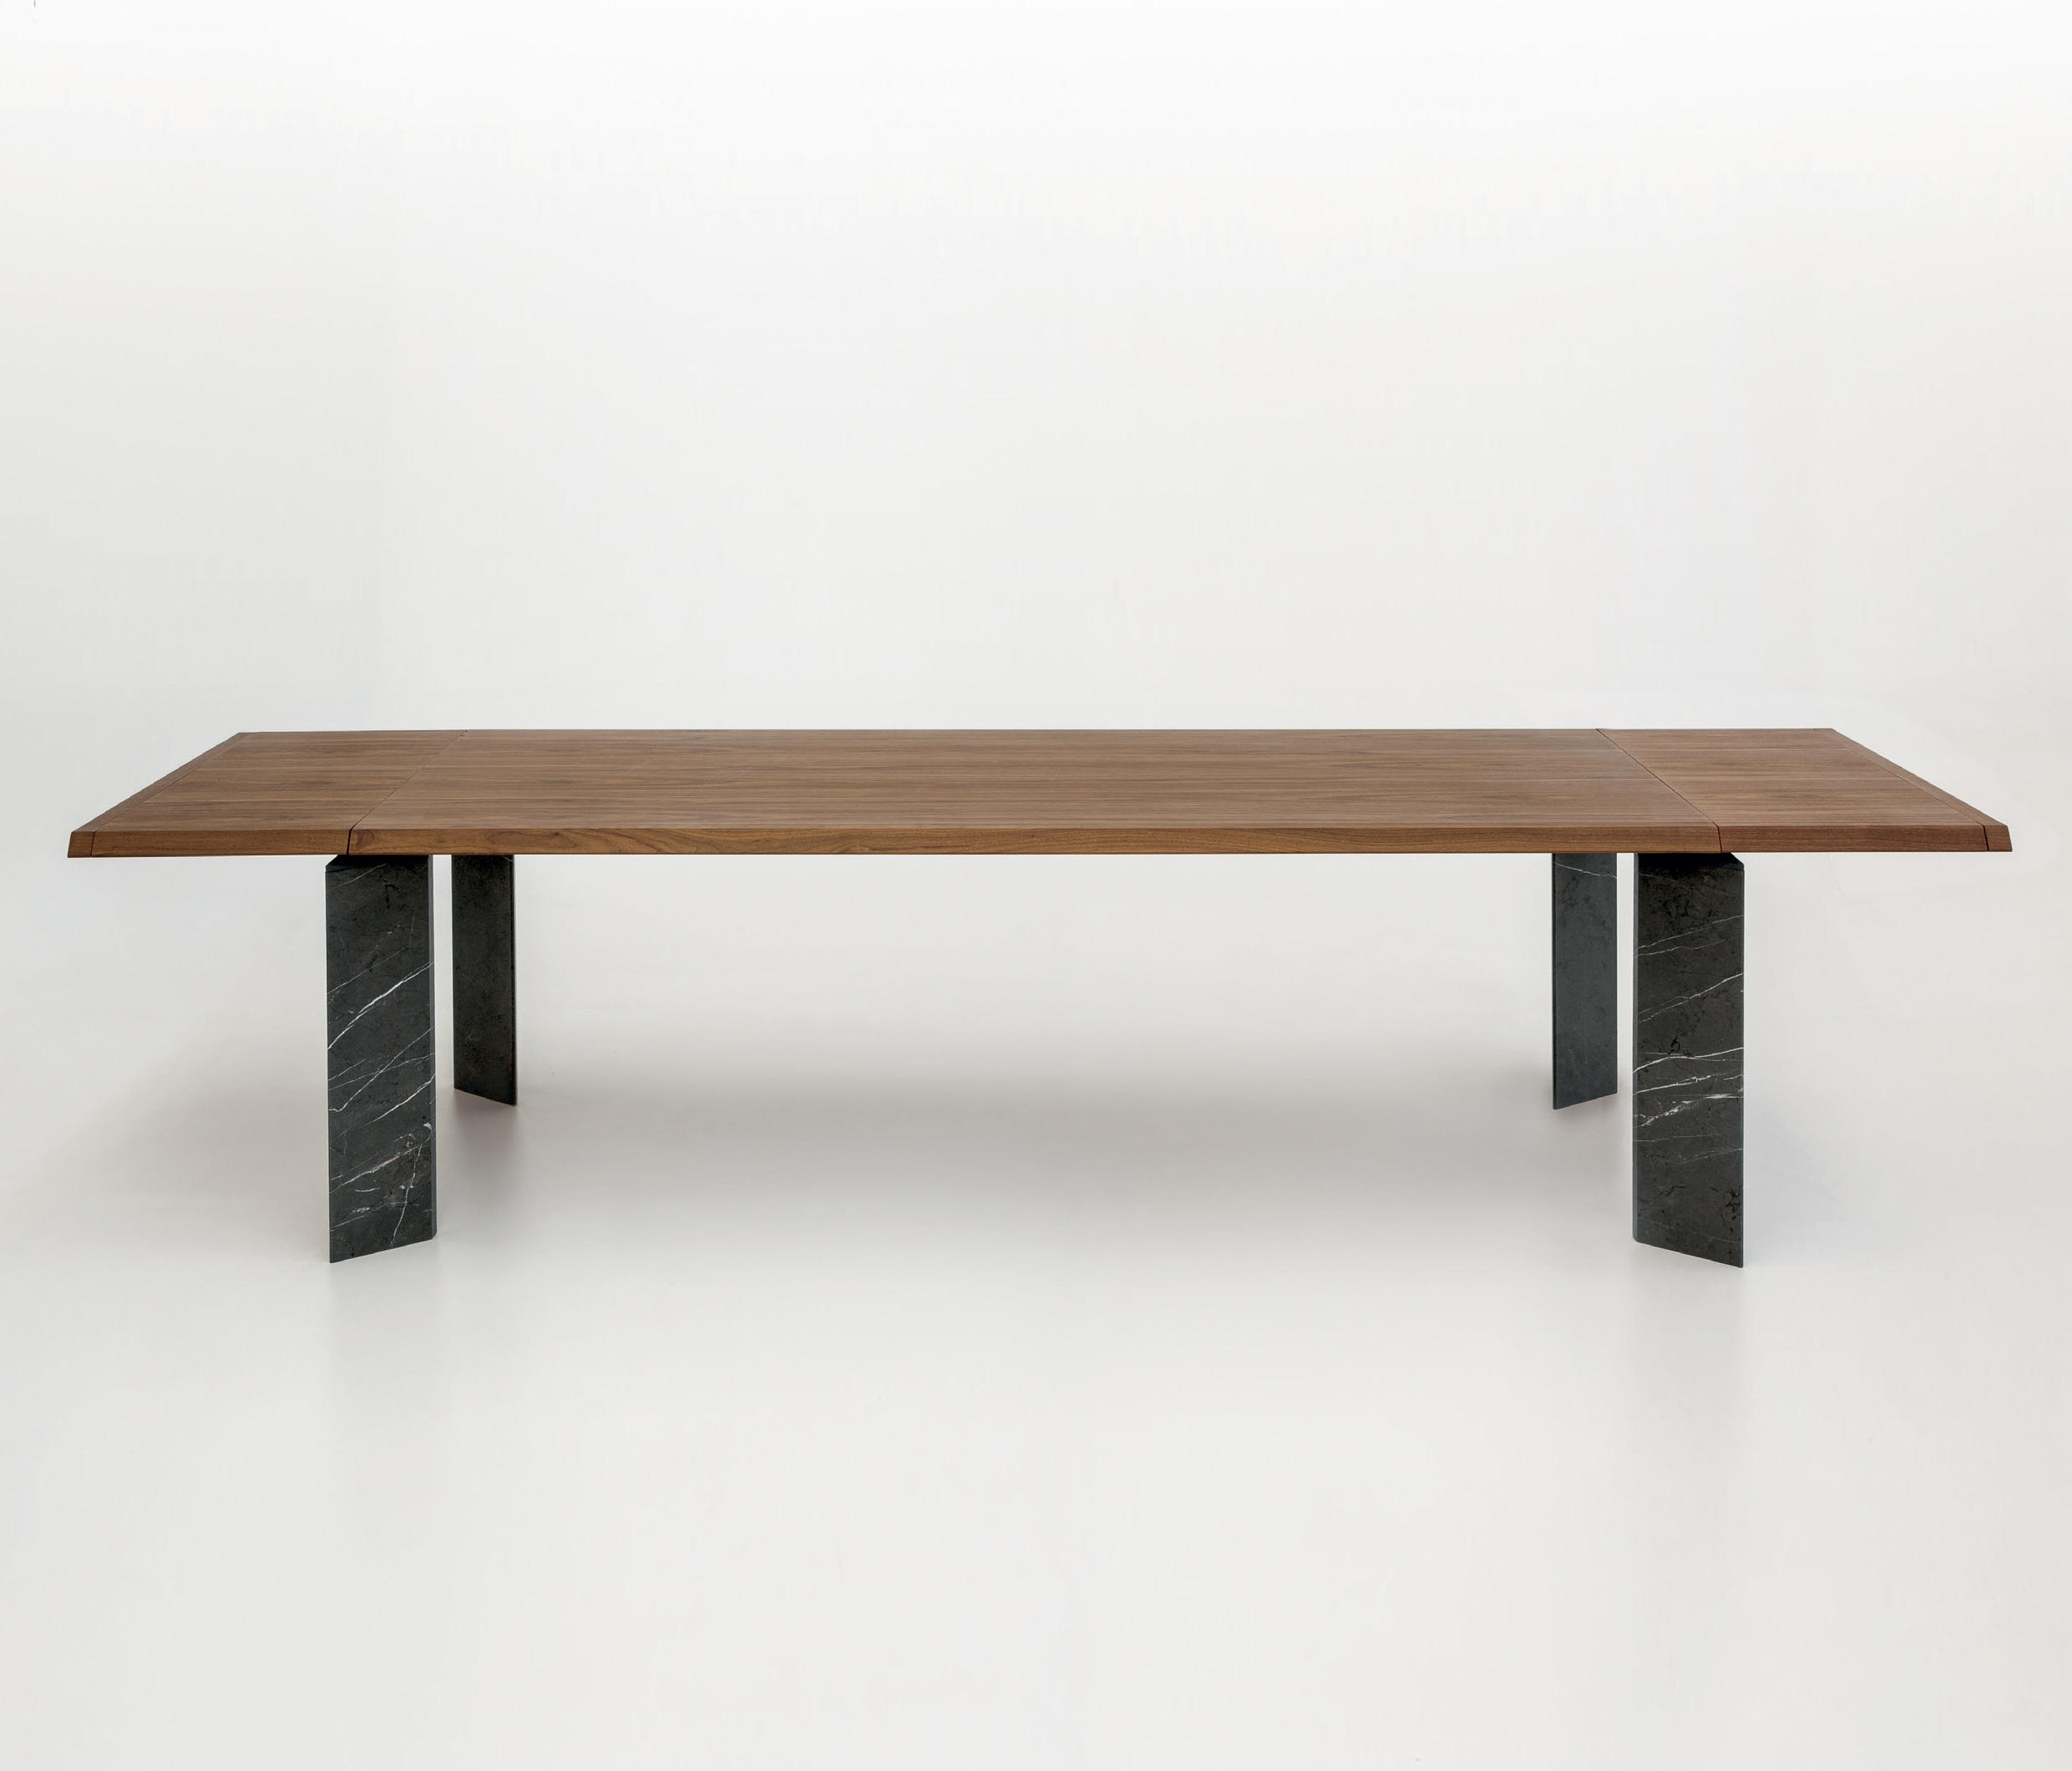 Architonic Within Most Recently Released Roma Dining Tables (View 11 of 25)